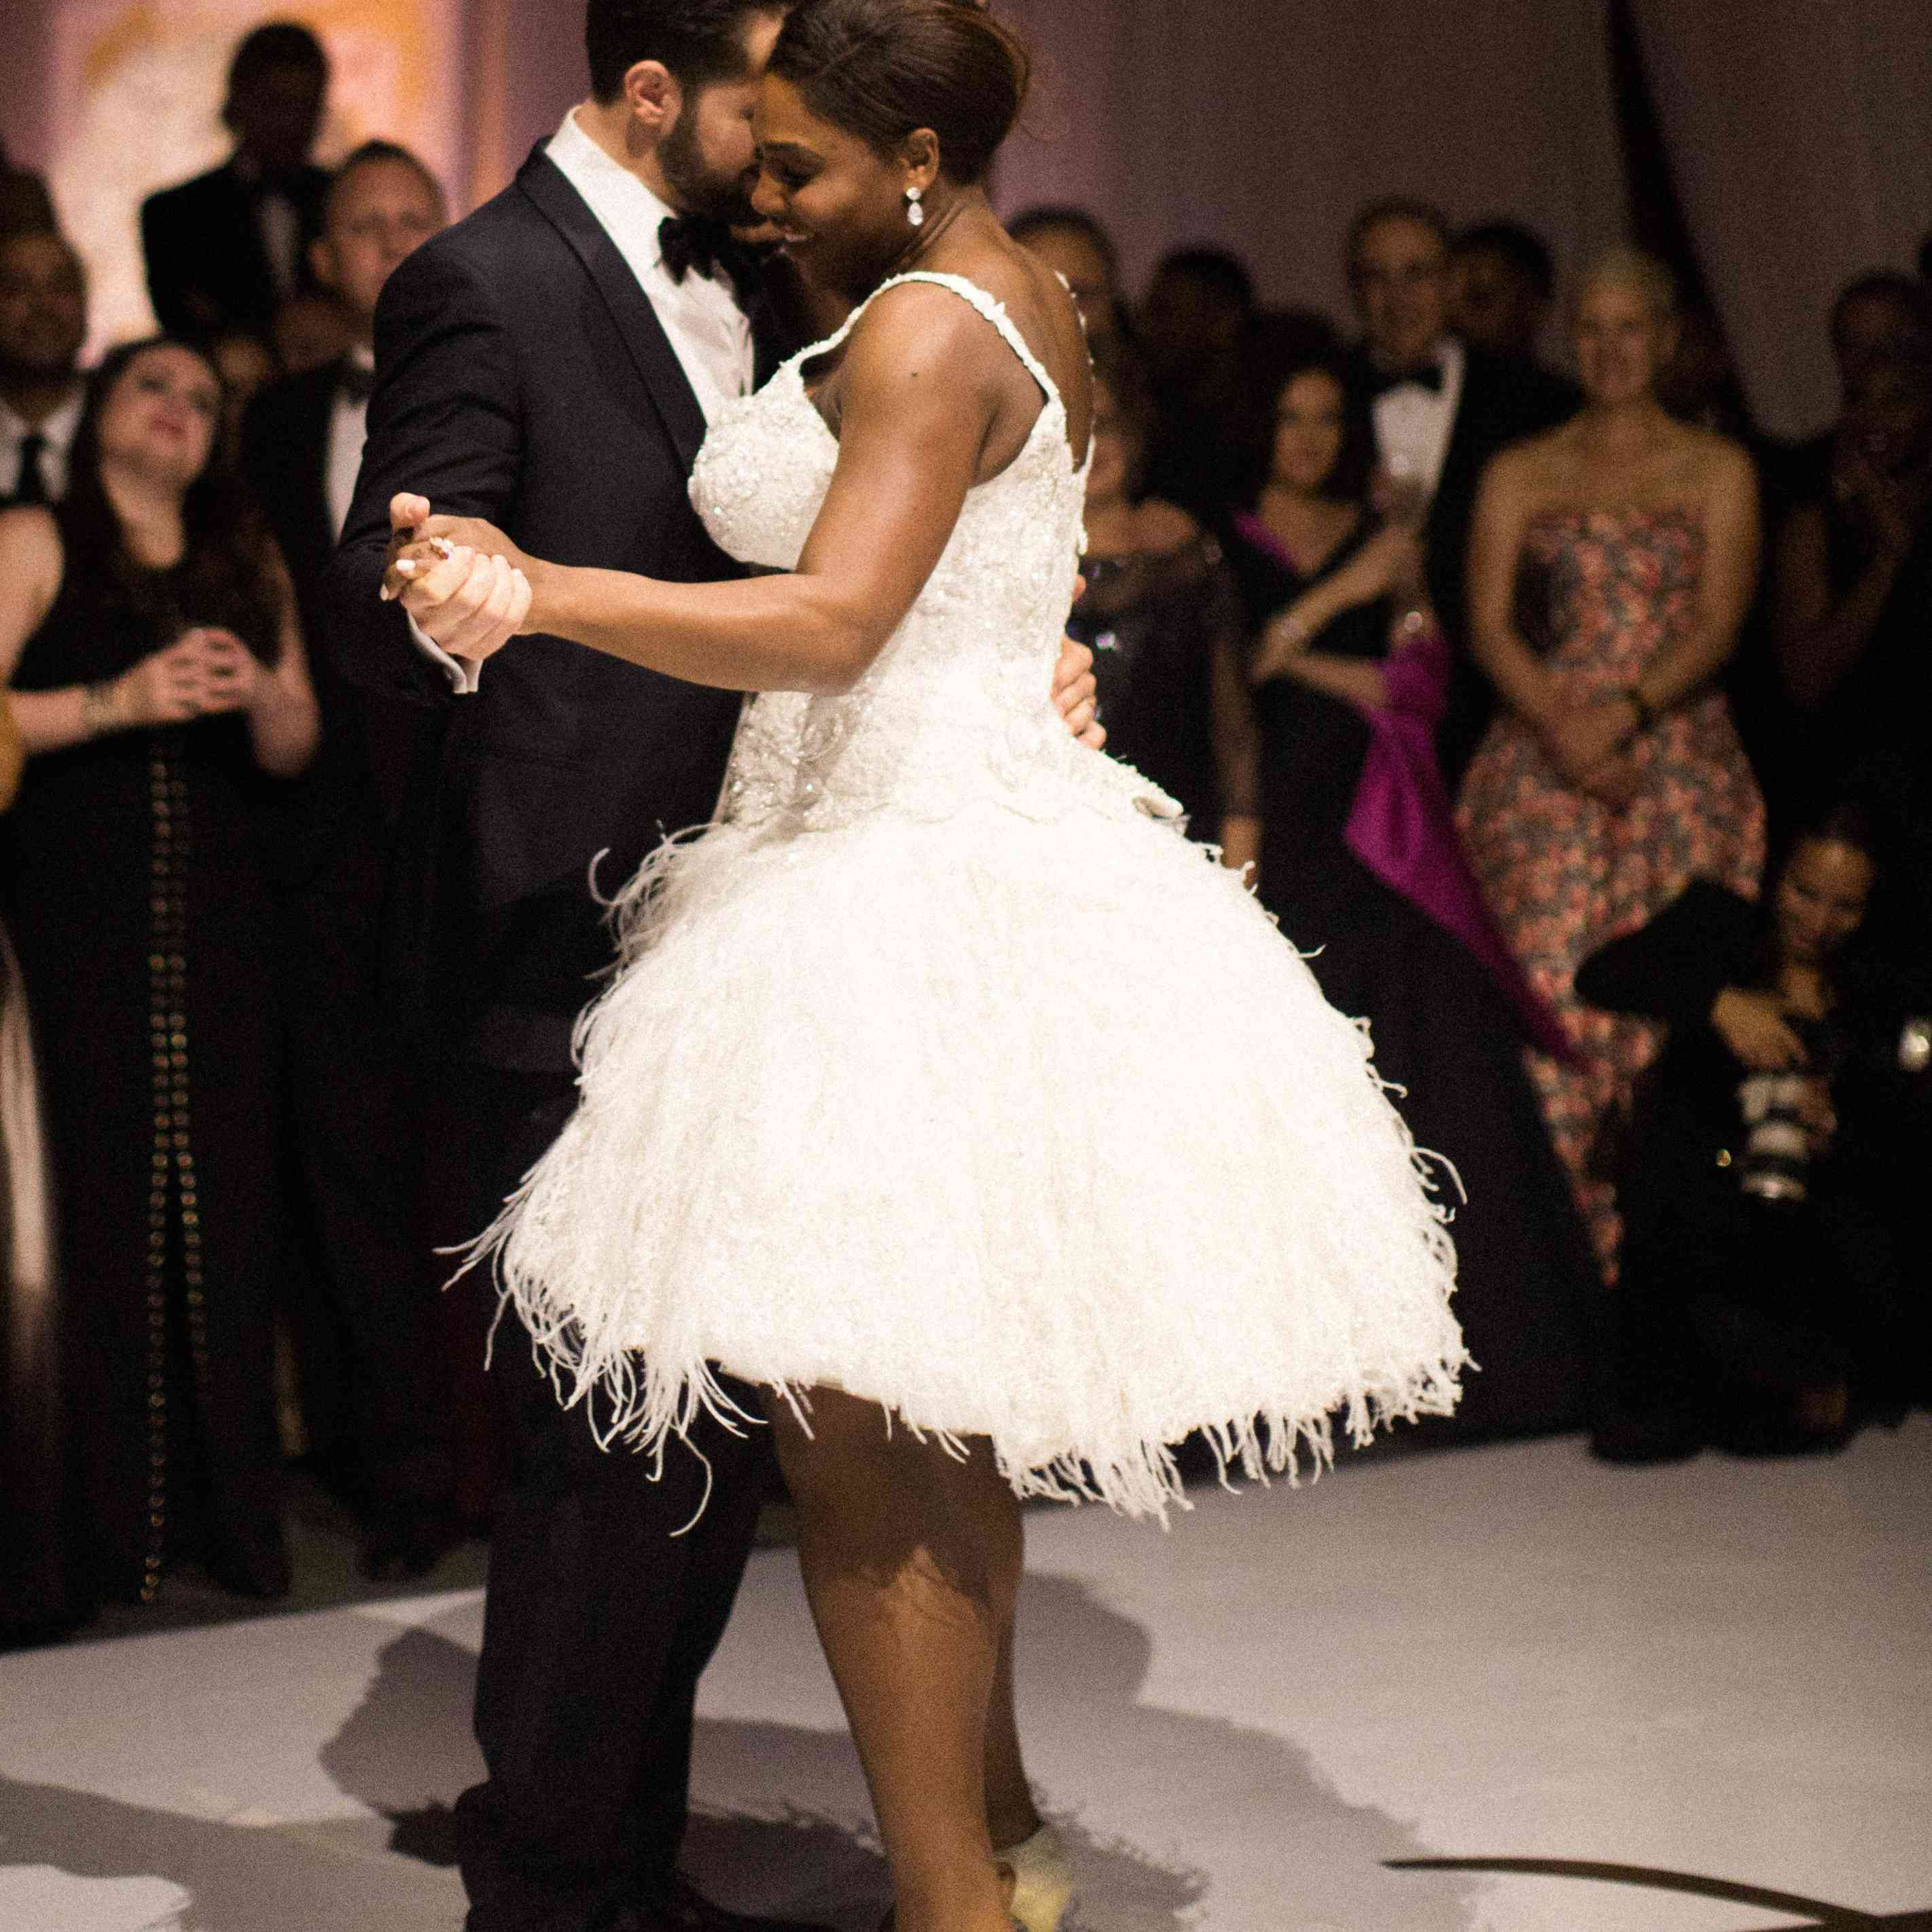 <p>Serena Williams and Alexis Ohanian's First Dance</p><br><br>